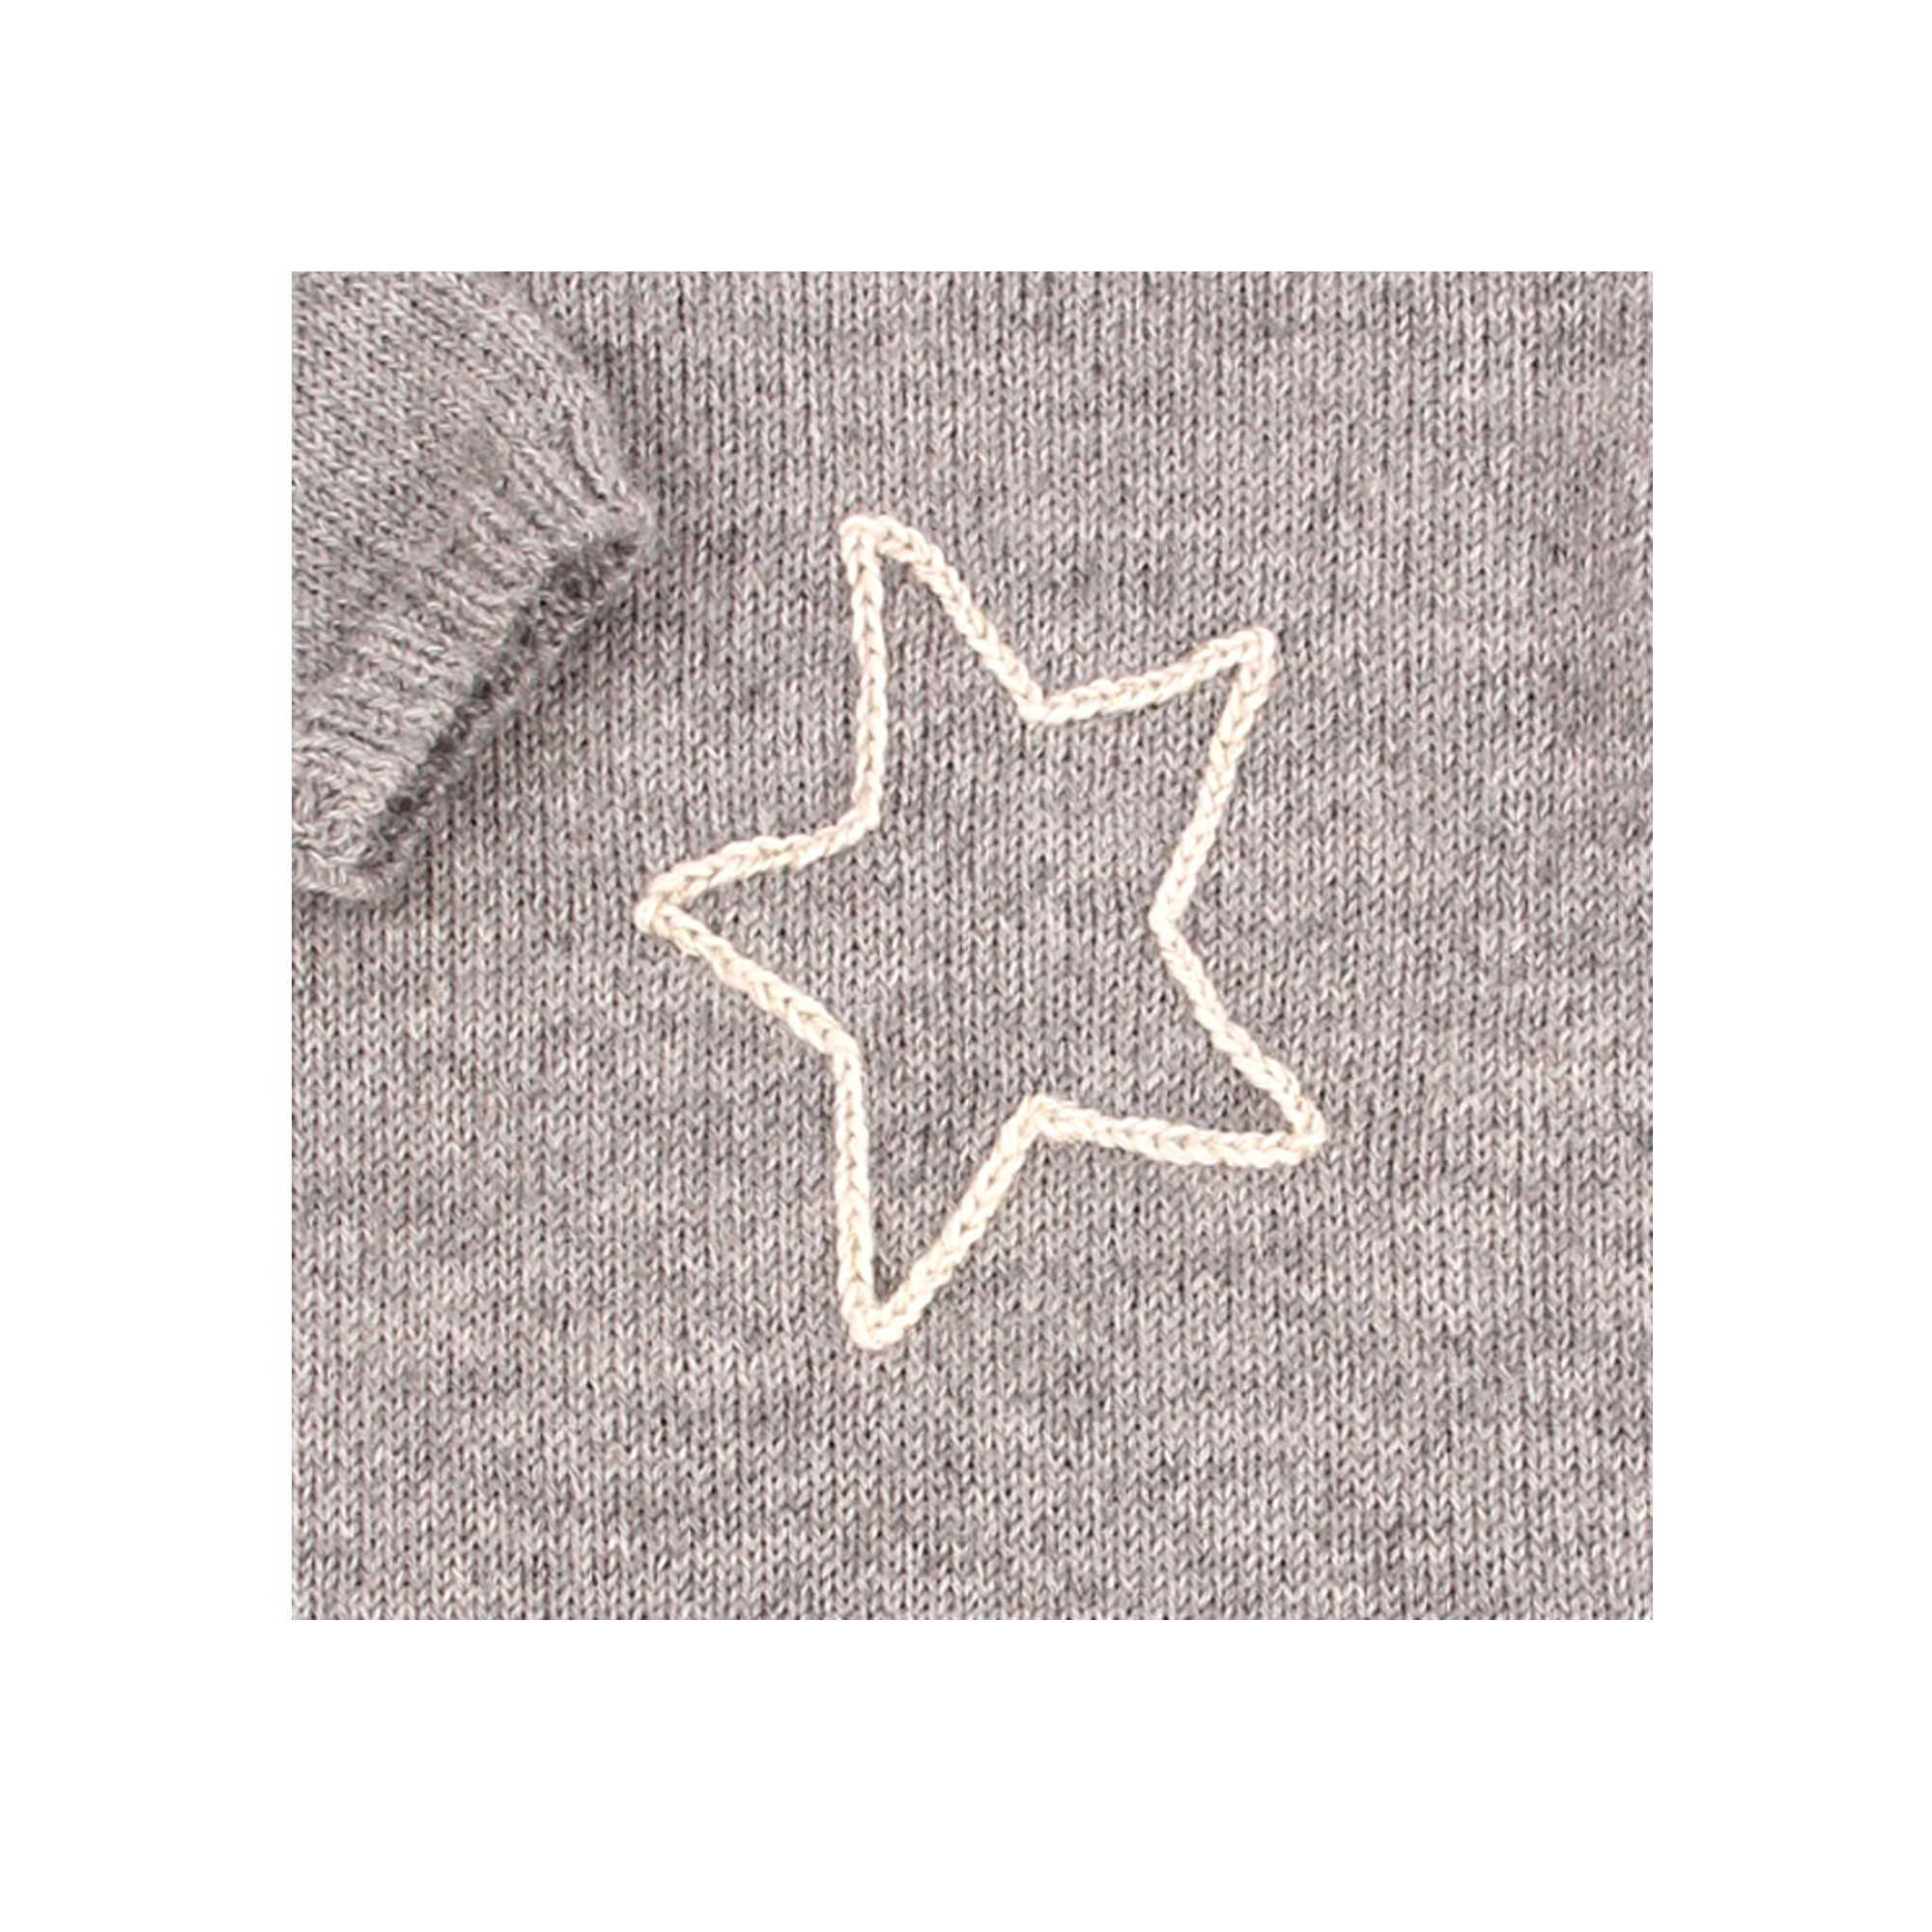 Claudine playsuit for baby - grey color with star - detail